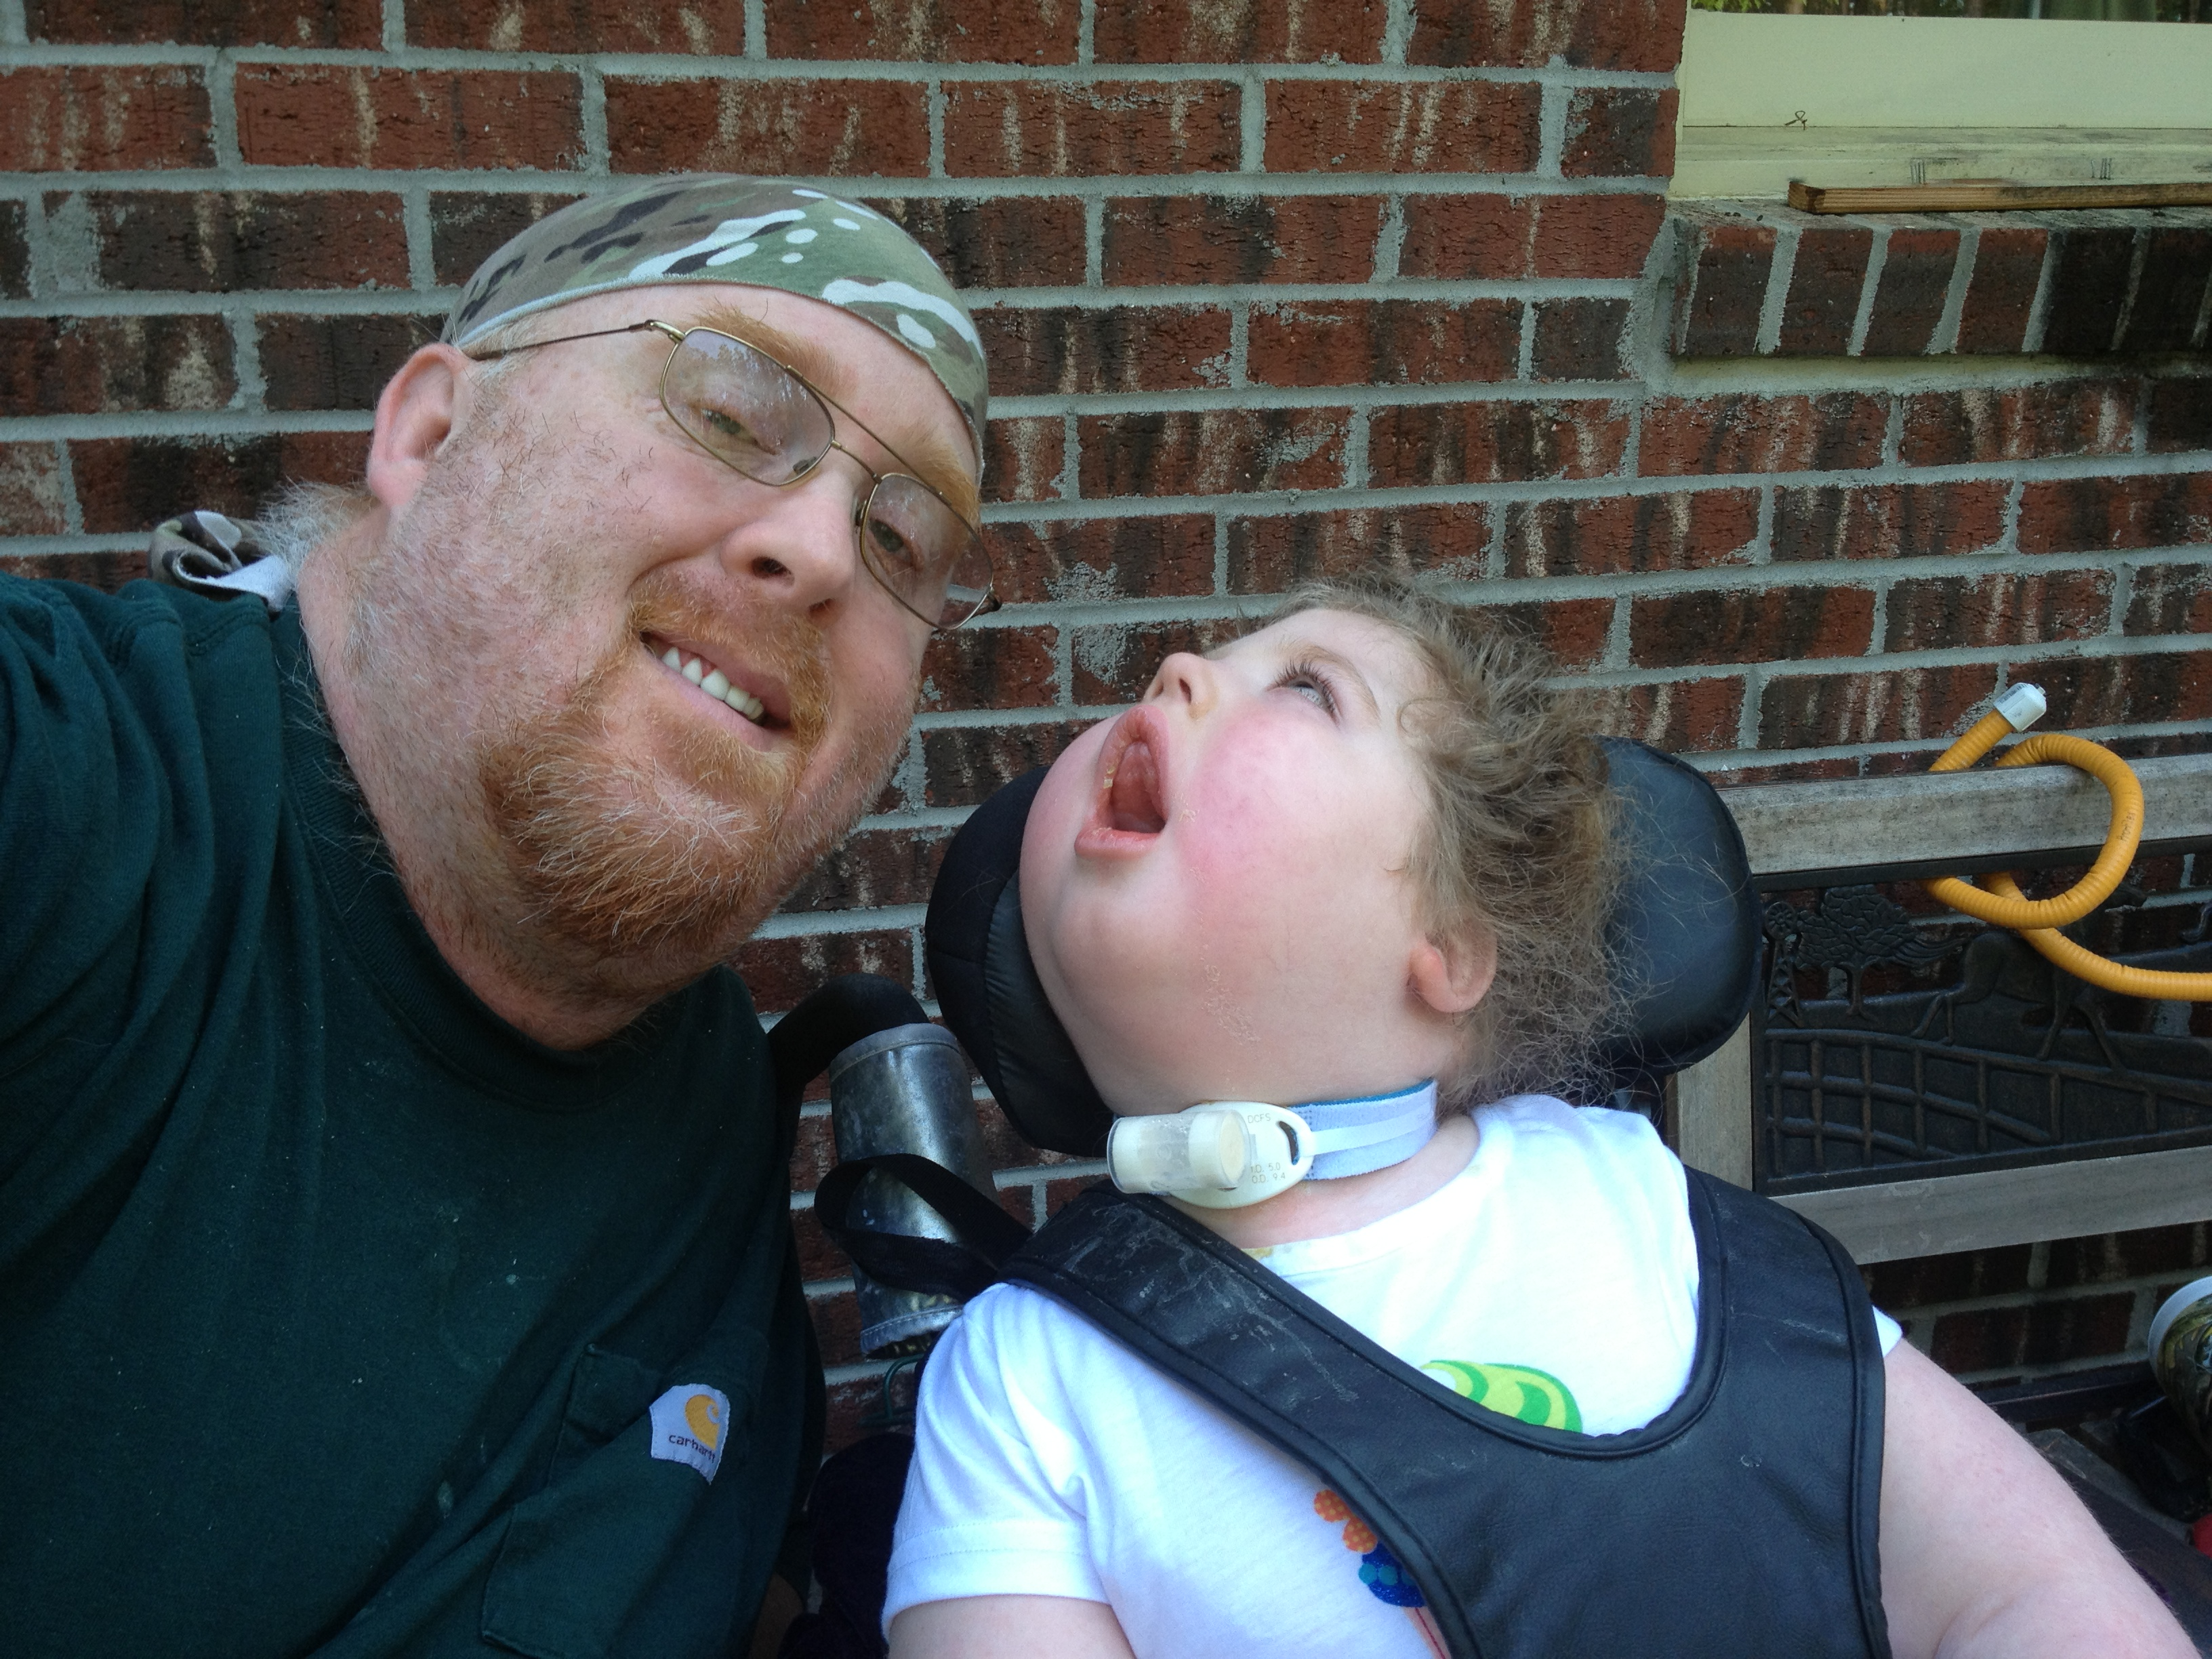 Daddy S Girl Ex Wrestler Devotes His Life To Caring For